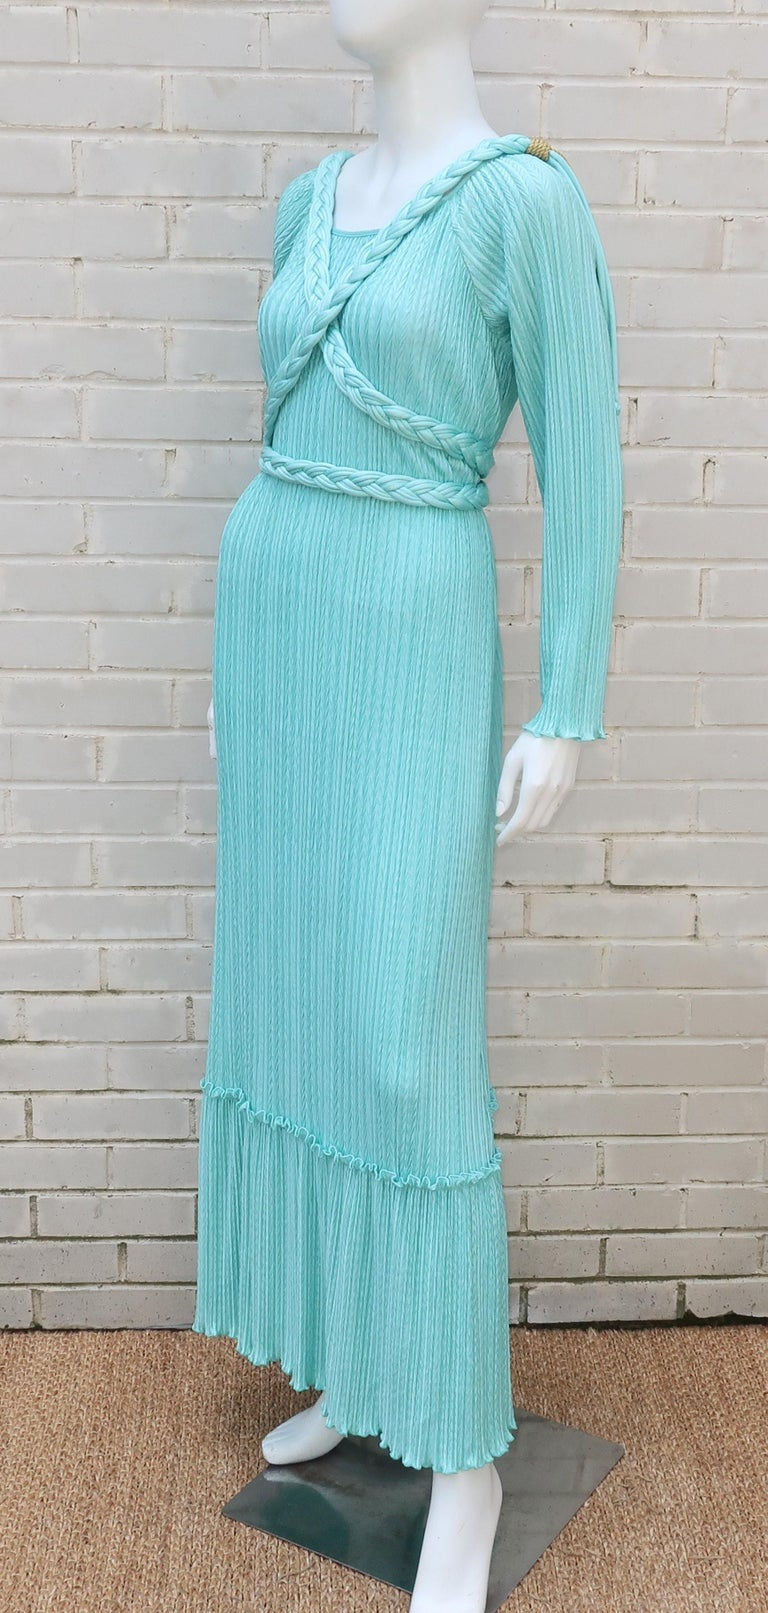 Mary McFadden Aqua Goddess Dress For Sale 5